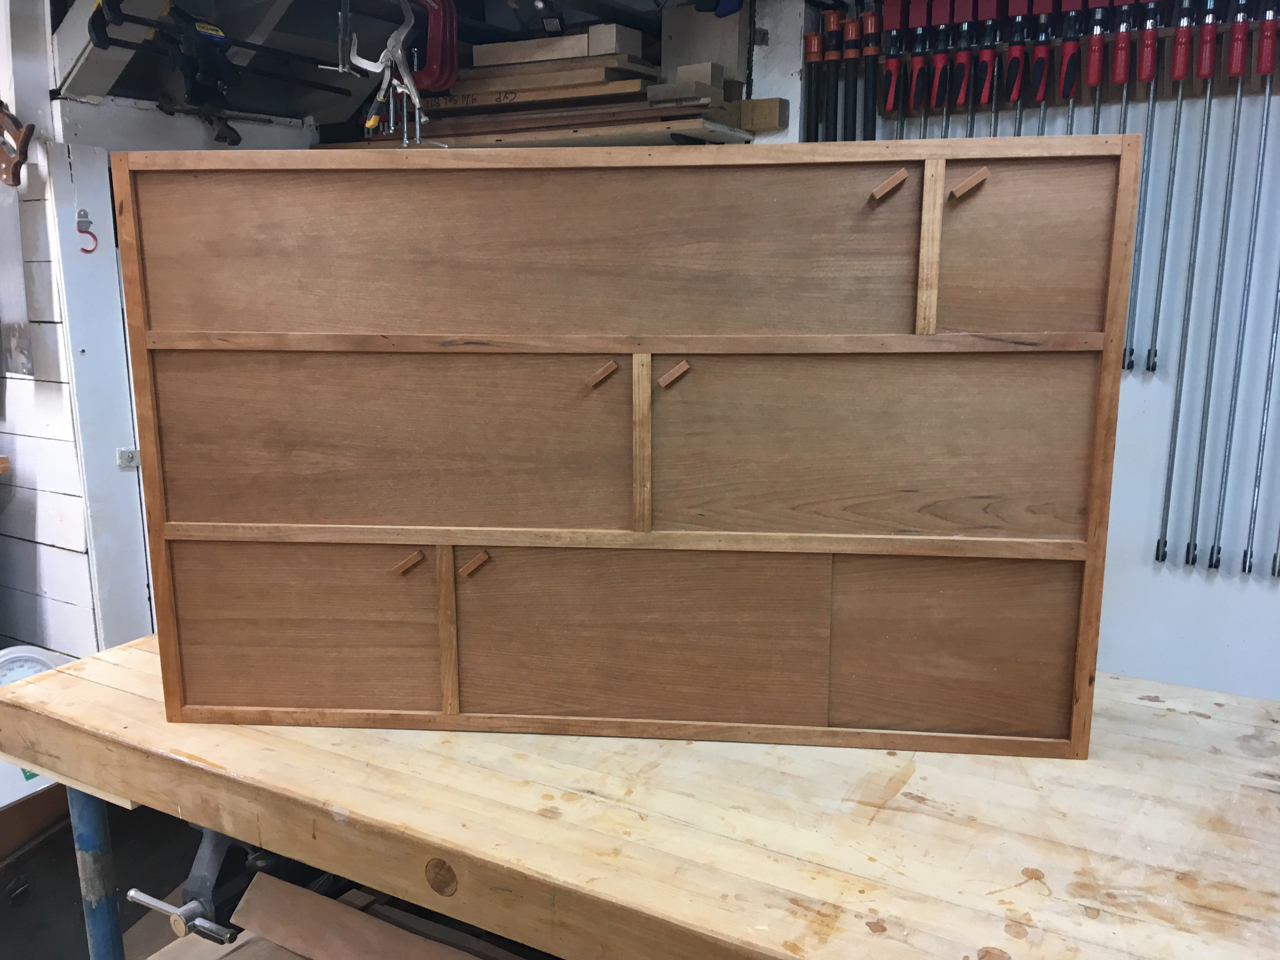 Completed Cabinet